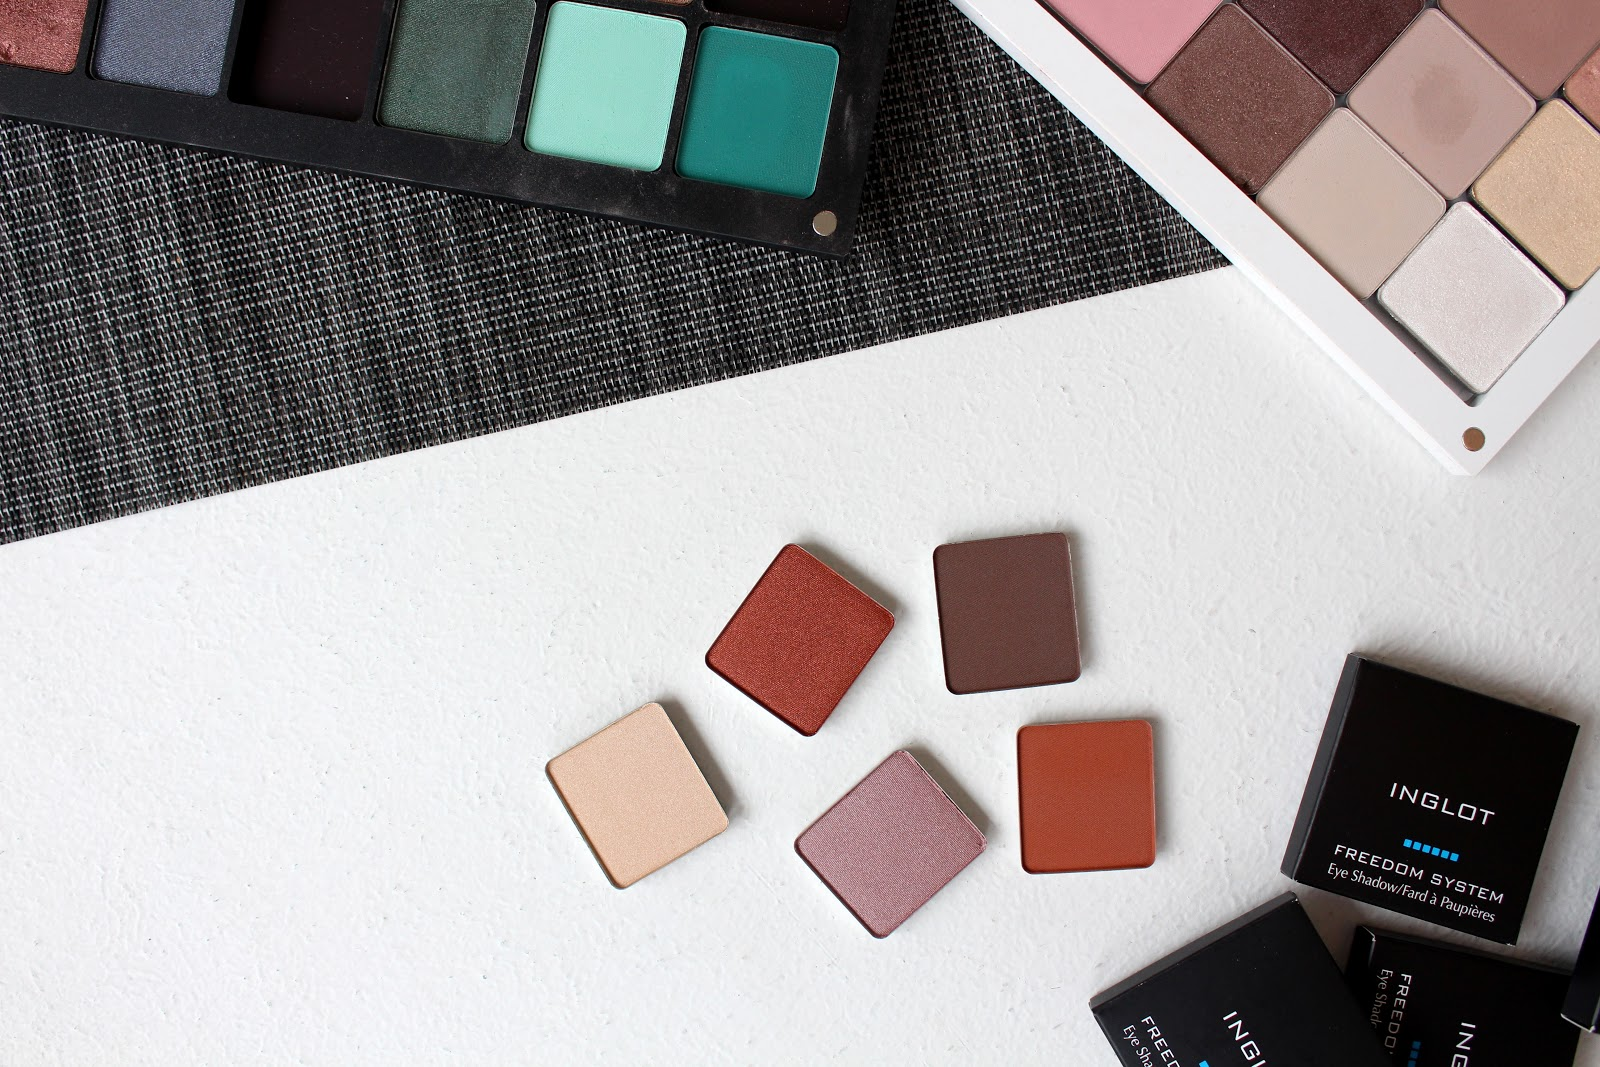 Inglot Eye Shadow Review and Swatches